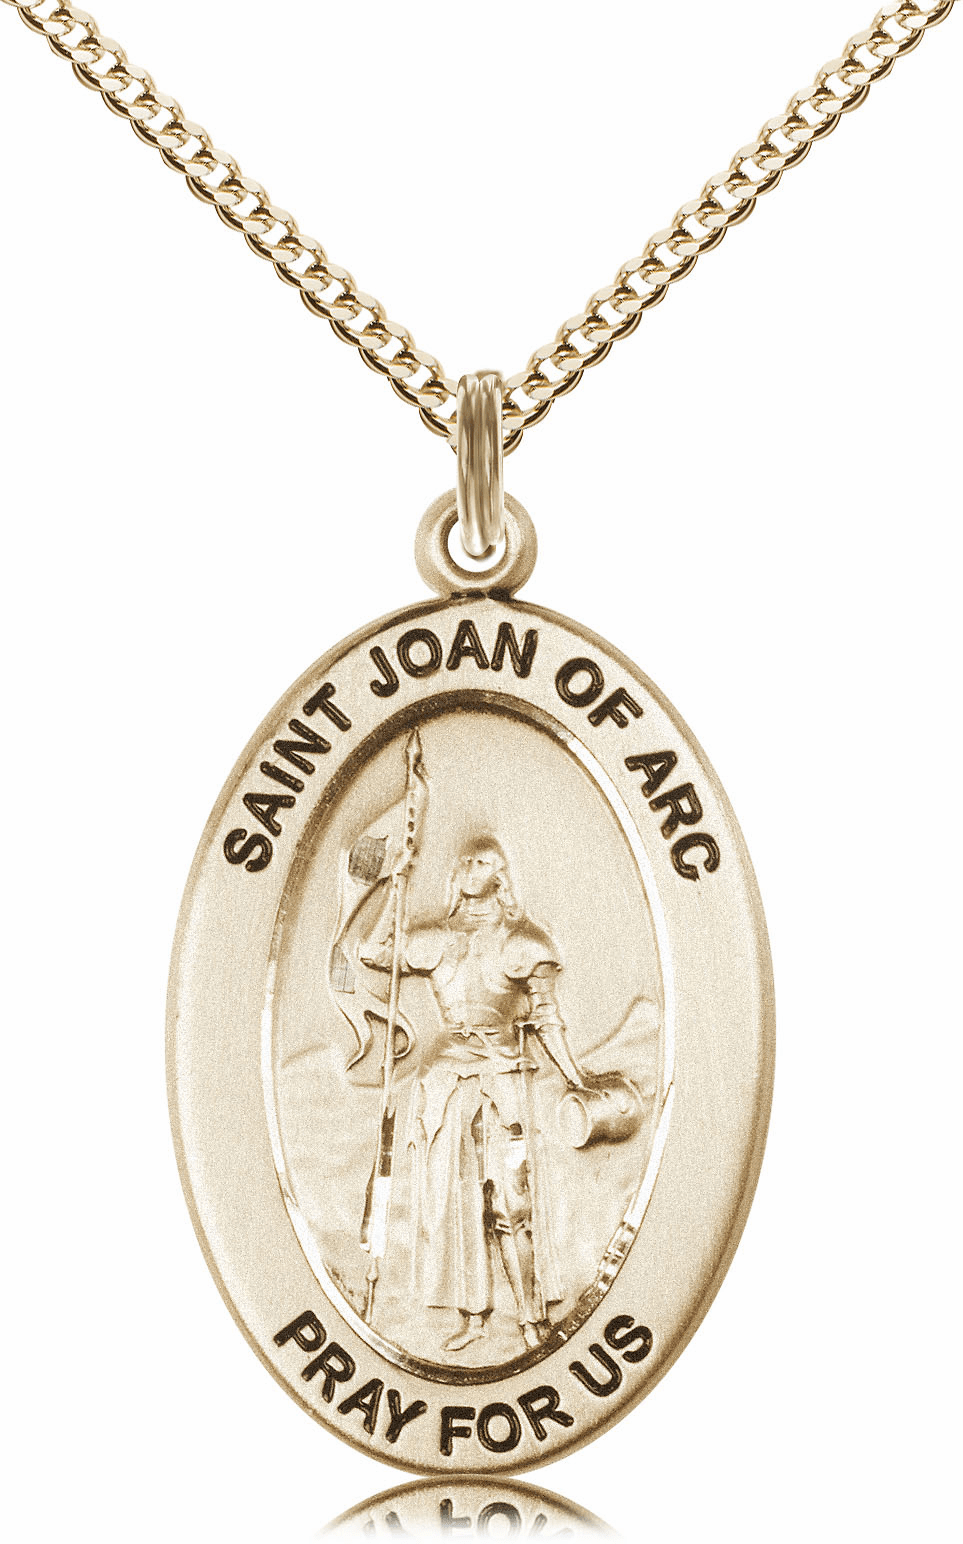 Bliss Mfg Saint Joan of Arc 14kt Gold-filled Medal Necklace w/Chain